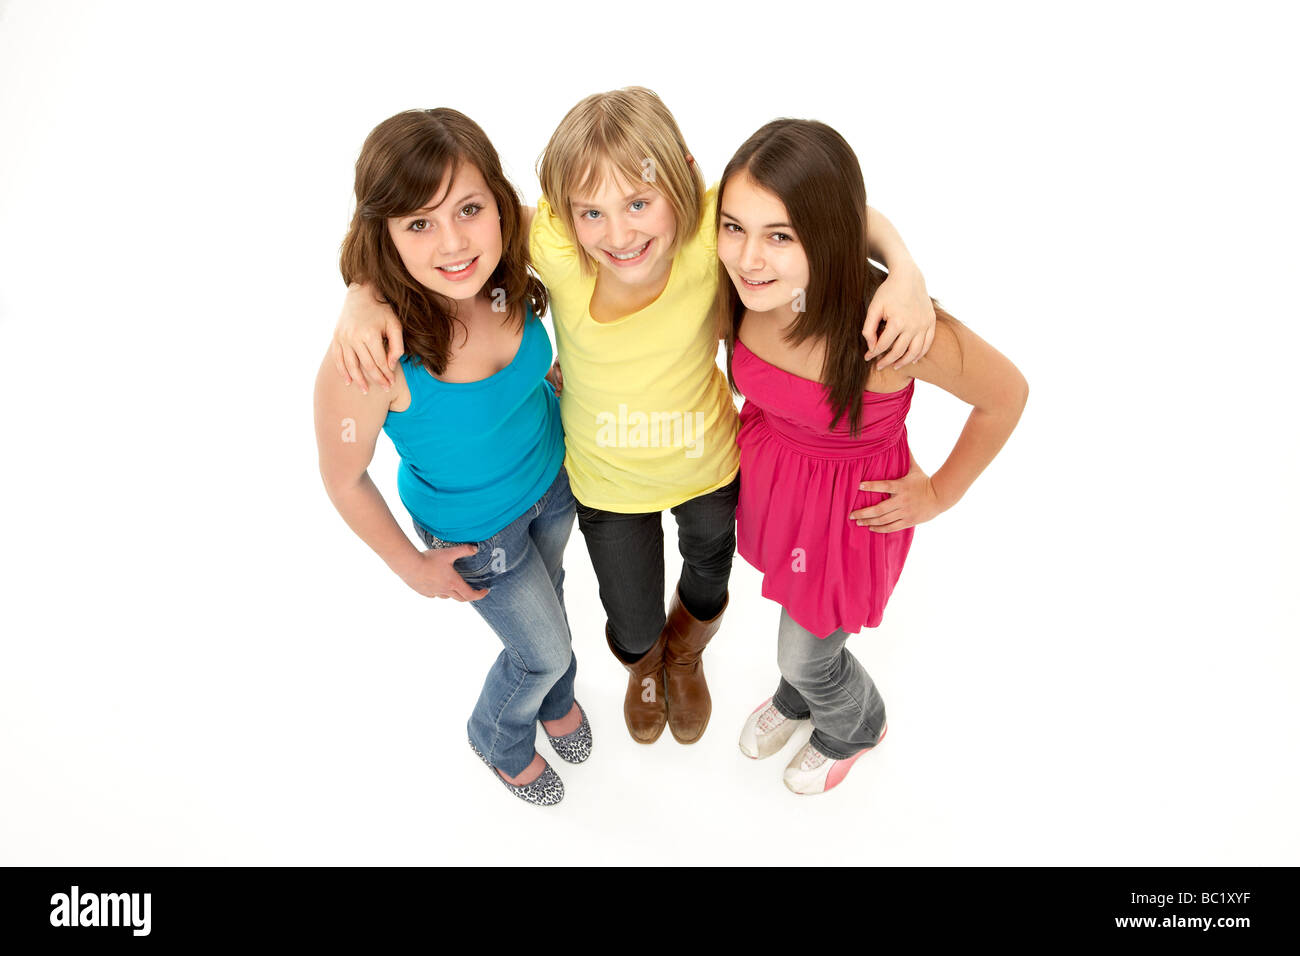 Group Of Three Young Girls In Studio - Stock Image